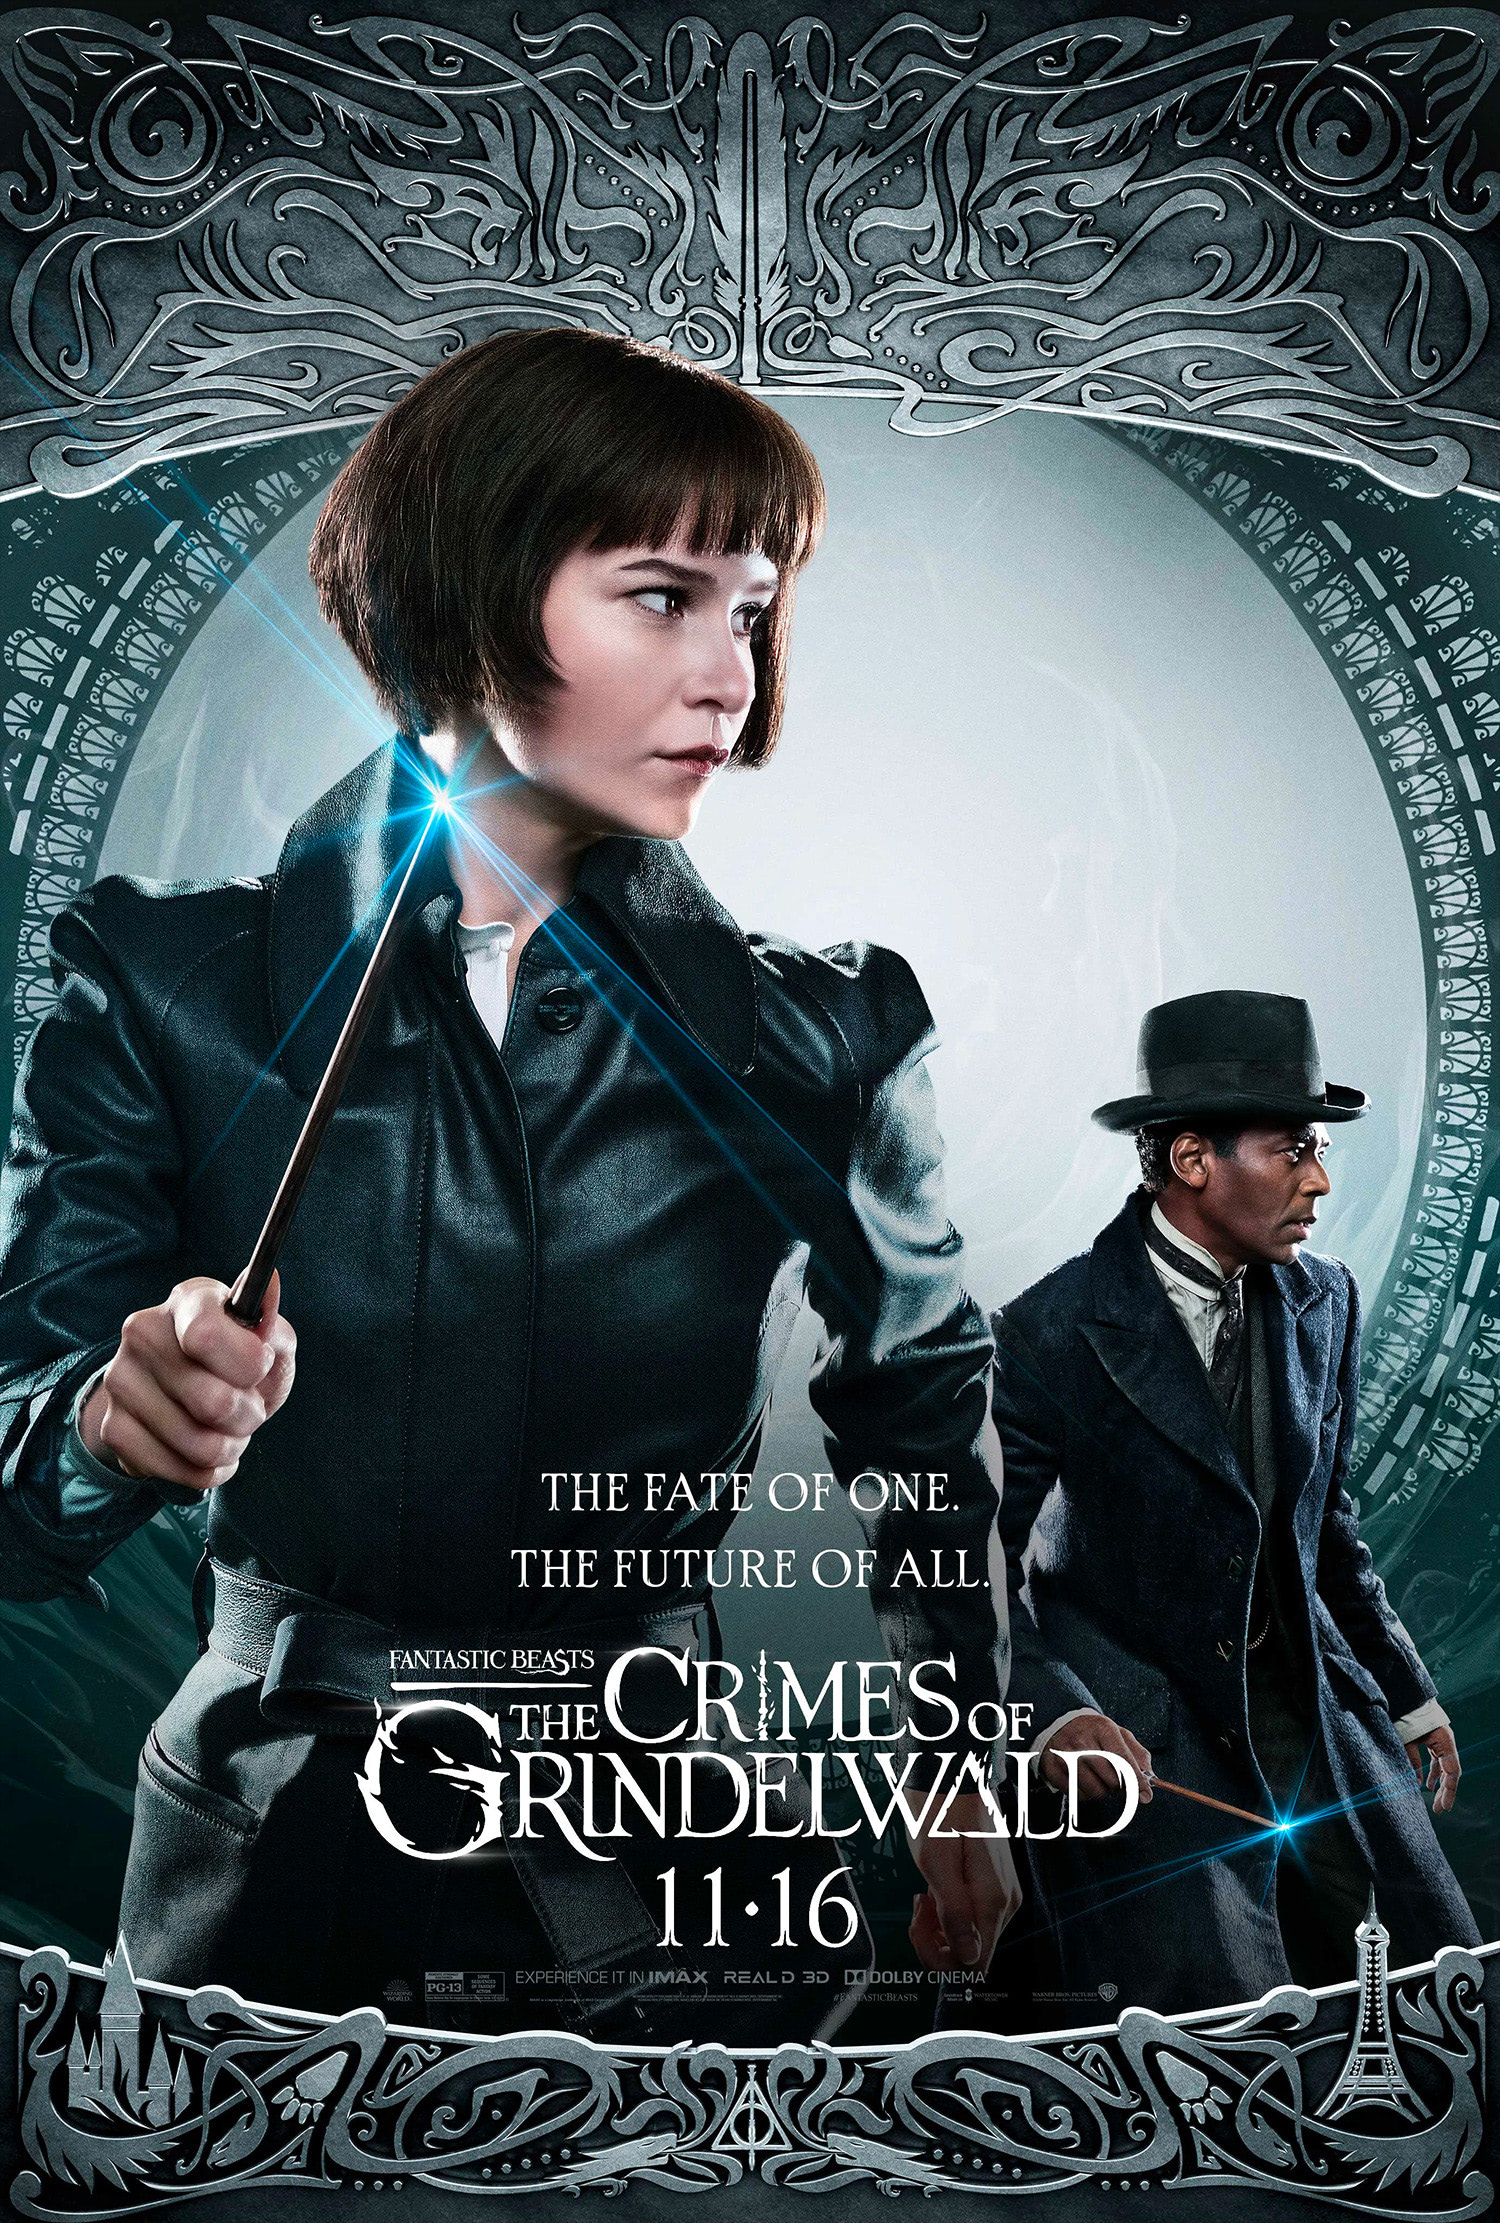 'Crimes of Grindelwald' Tina poster #2